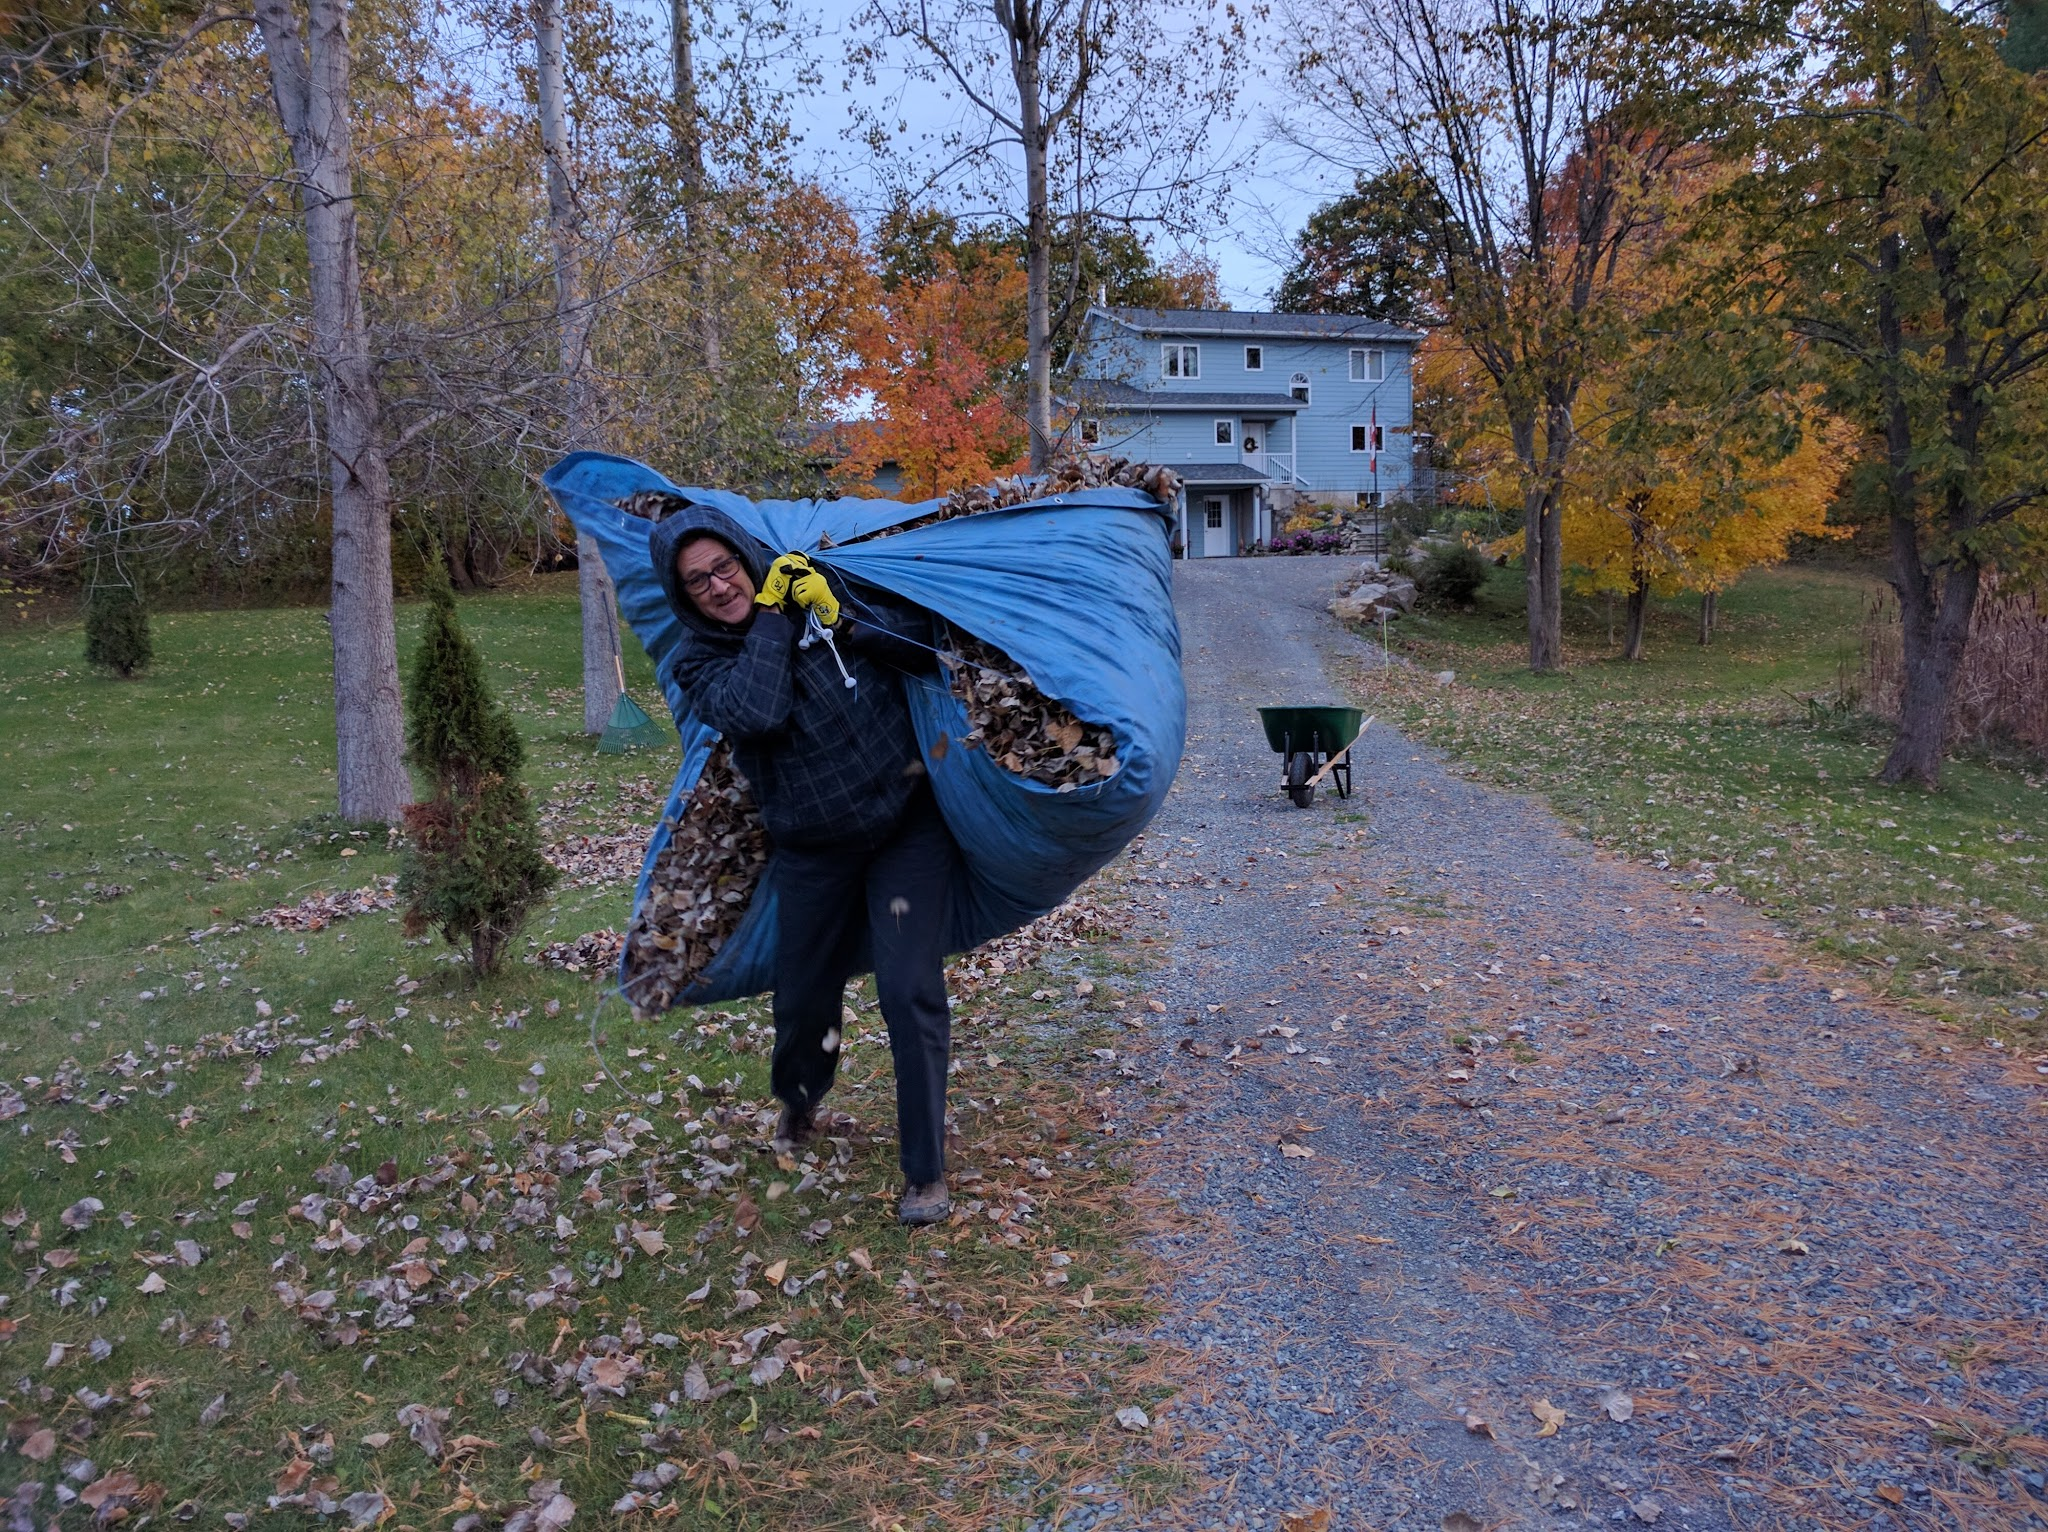 Moving those leaves